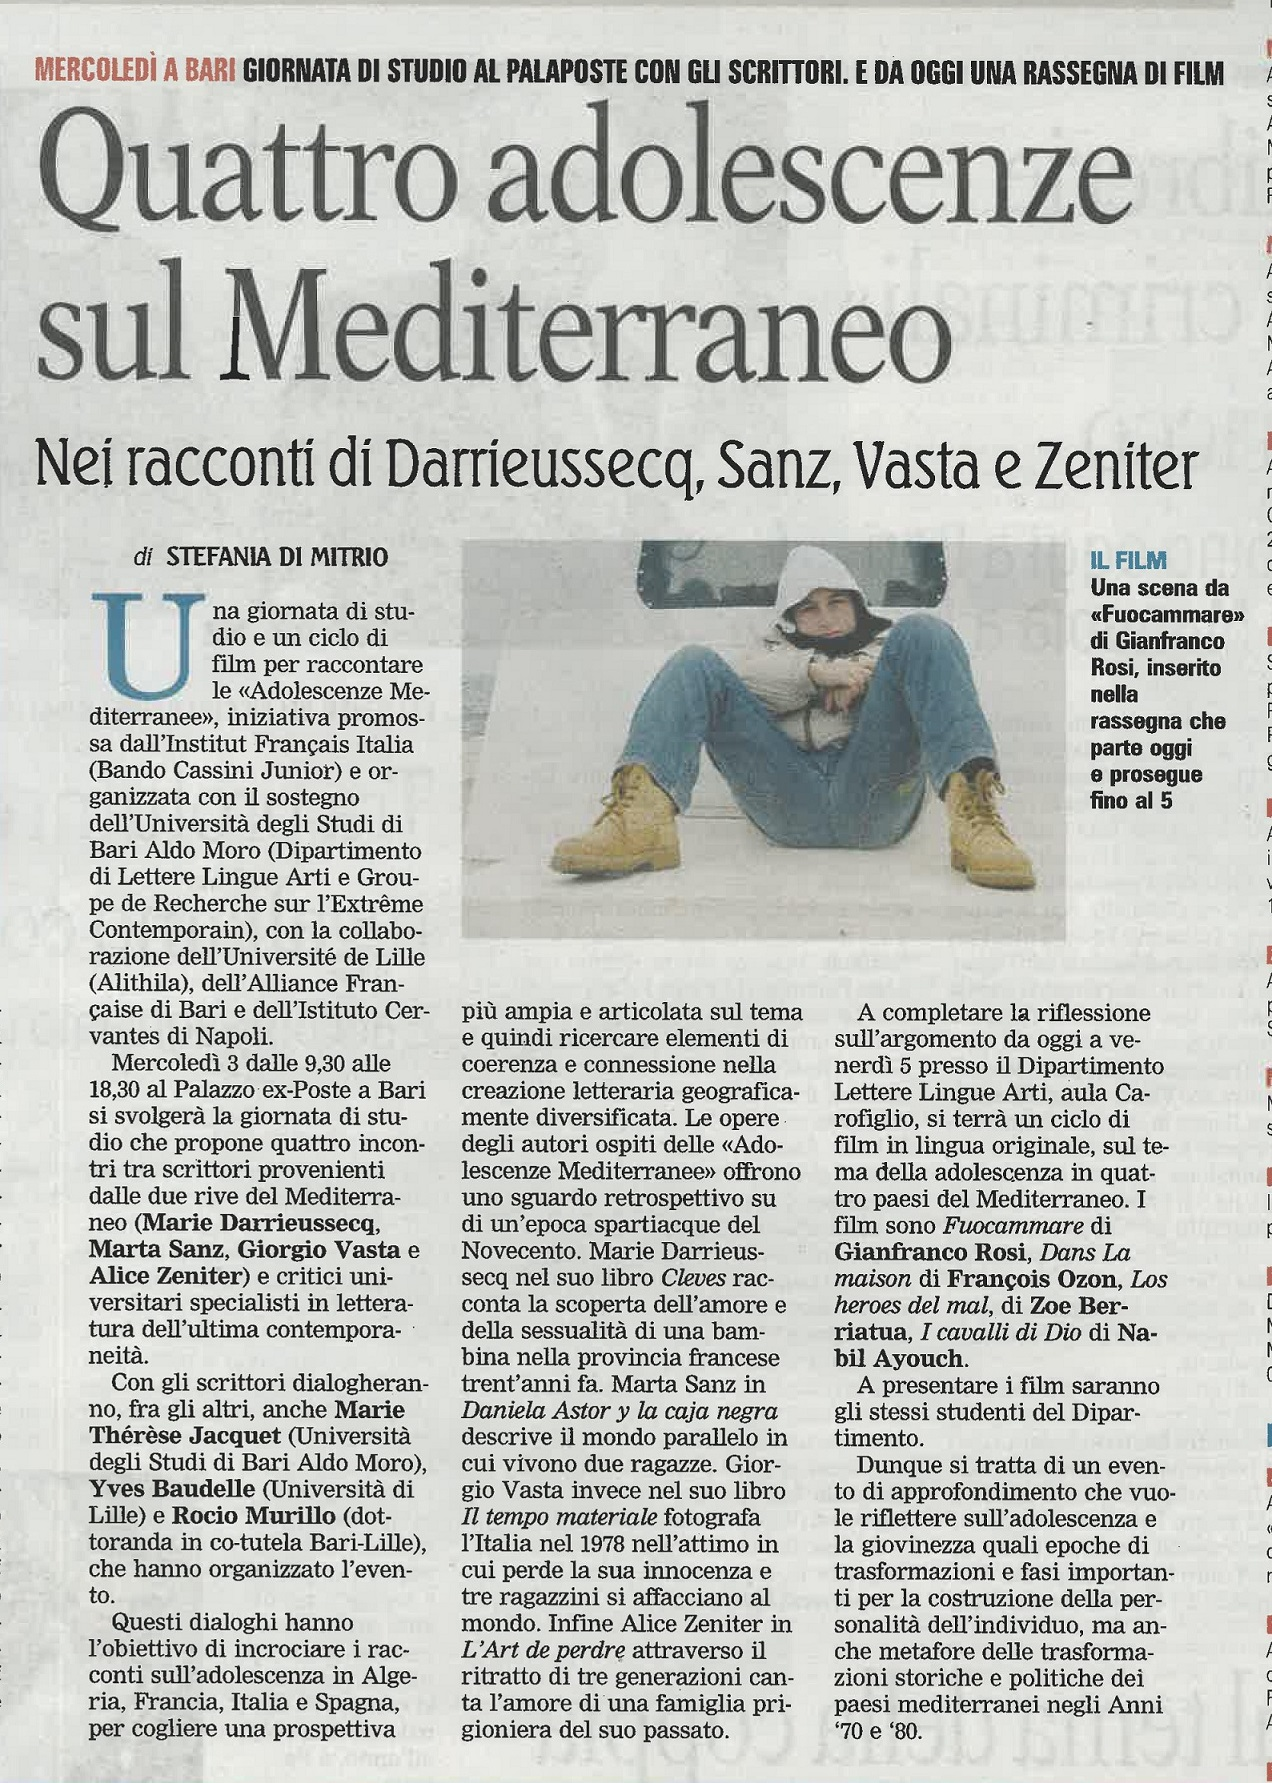 Article  Gazzeta - Extrait - copia